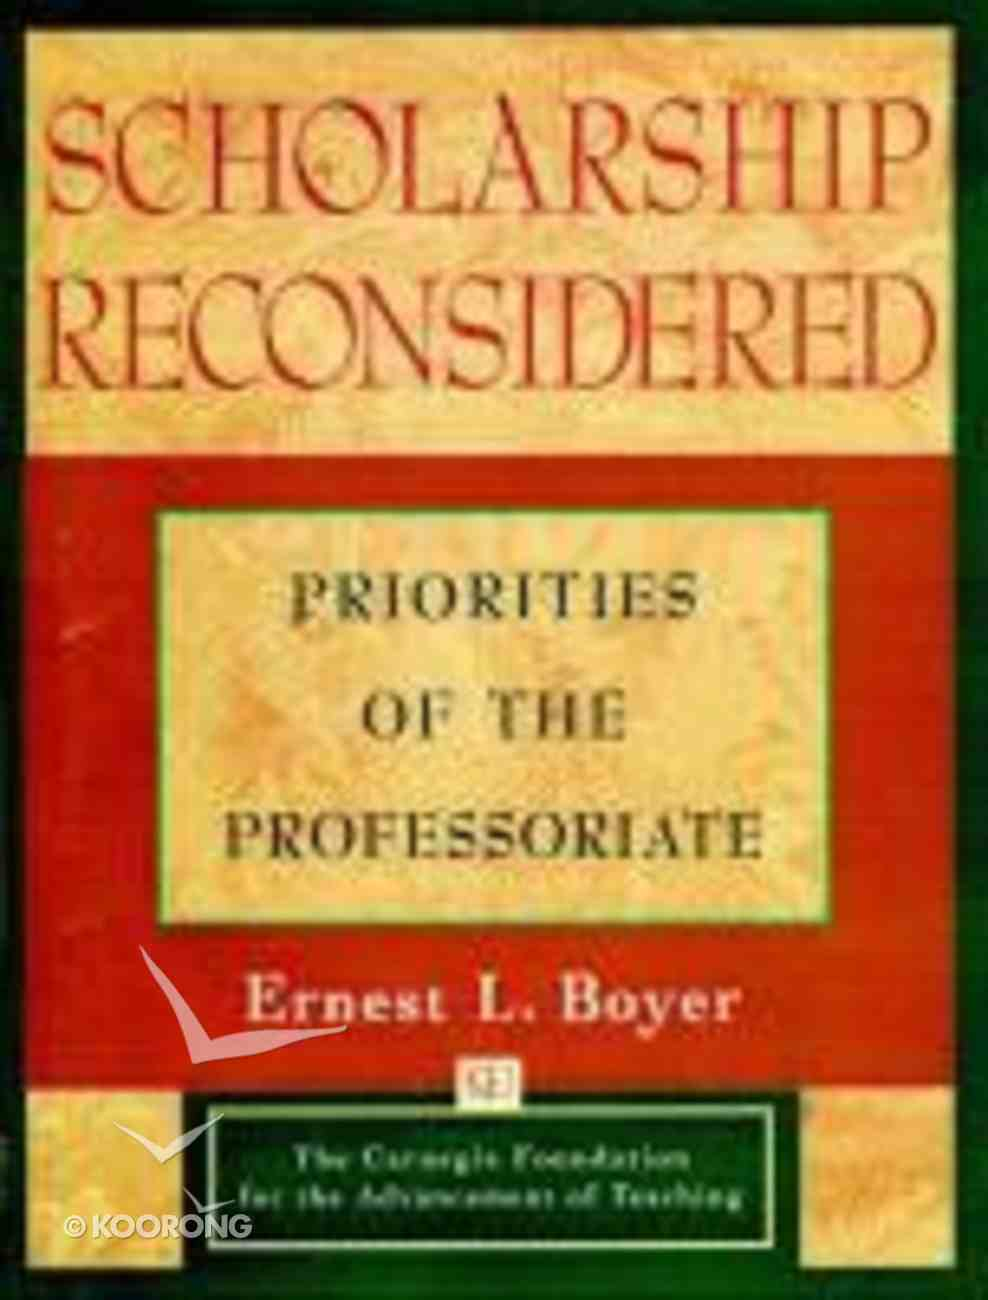 Scholarship Reconsidered Paperback